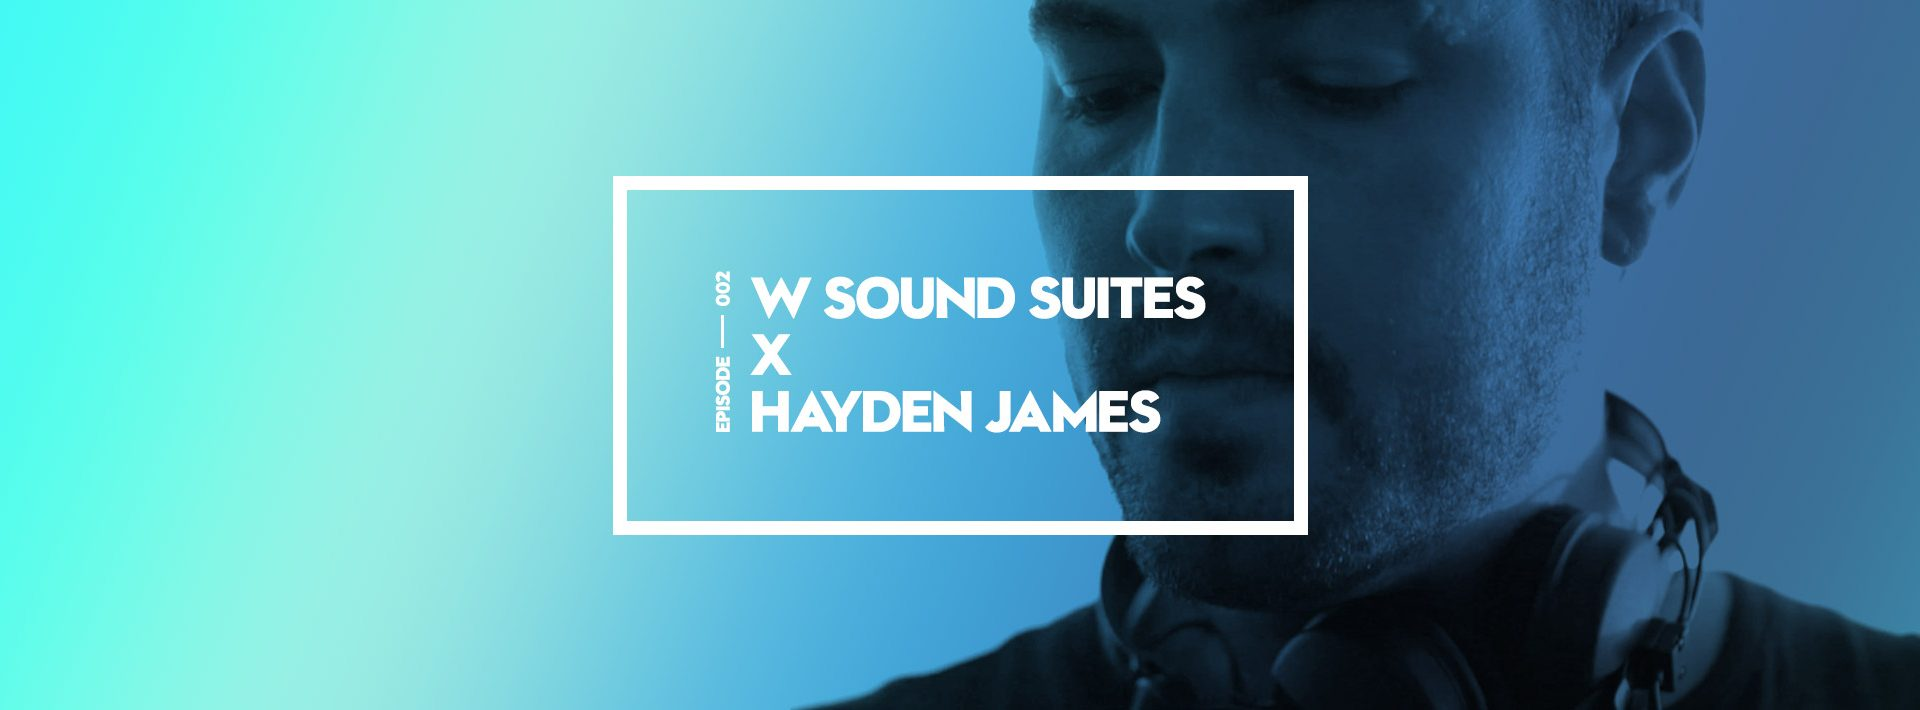 2016-08-30_Whotels_SoundingOffWithHayden_Podcast_desktop_02